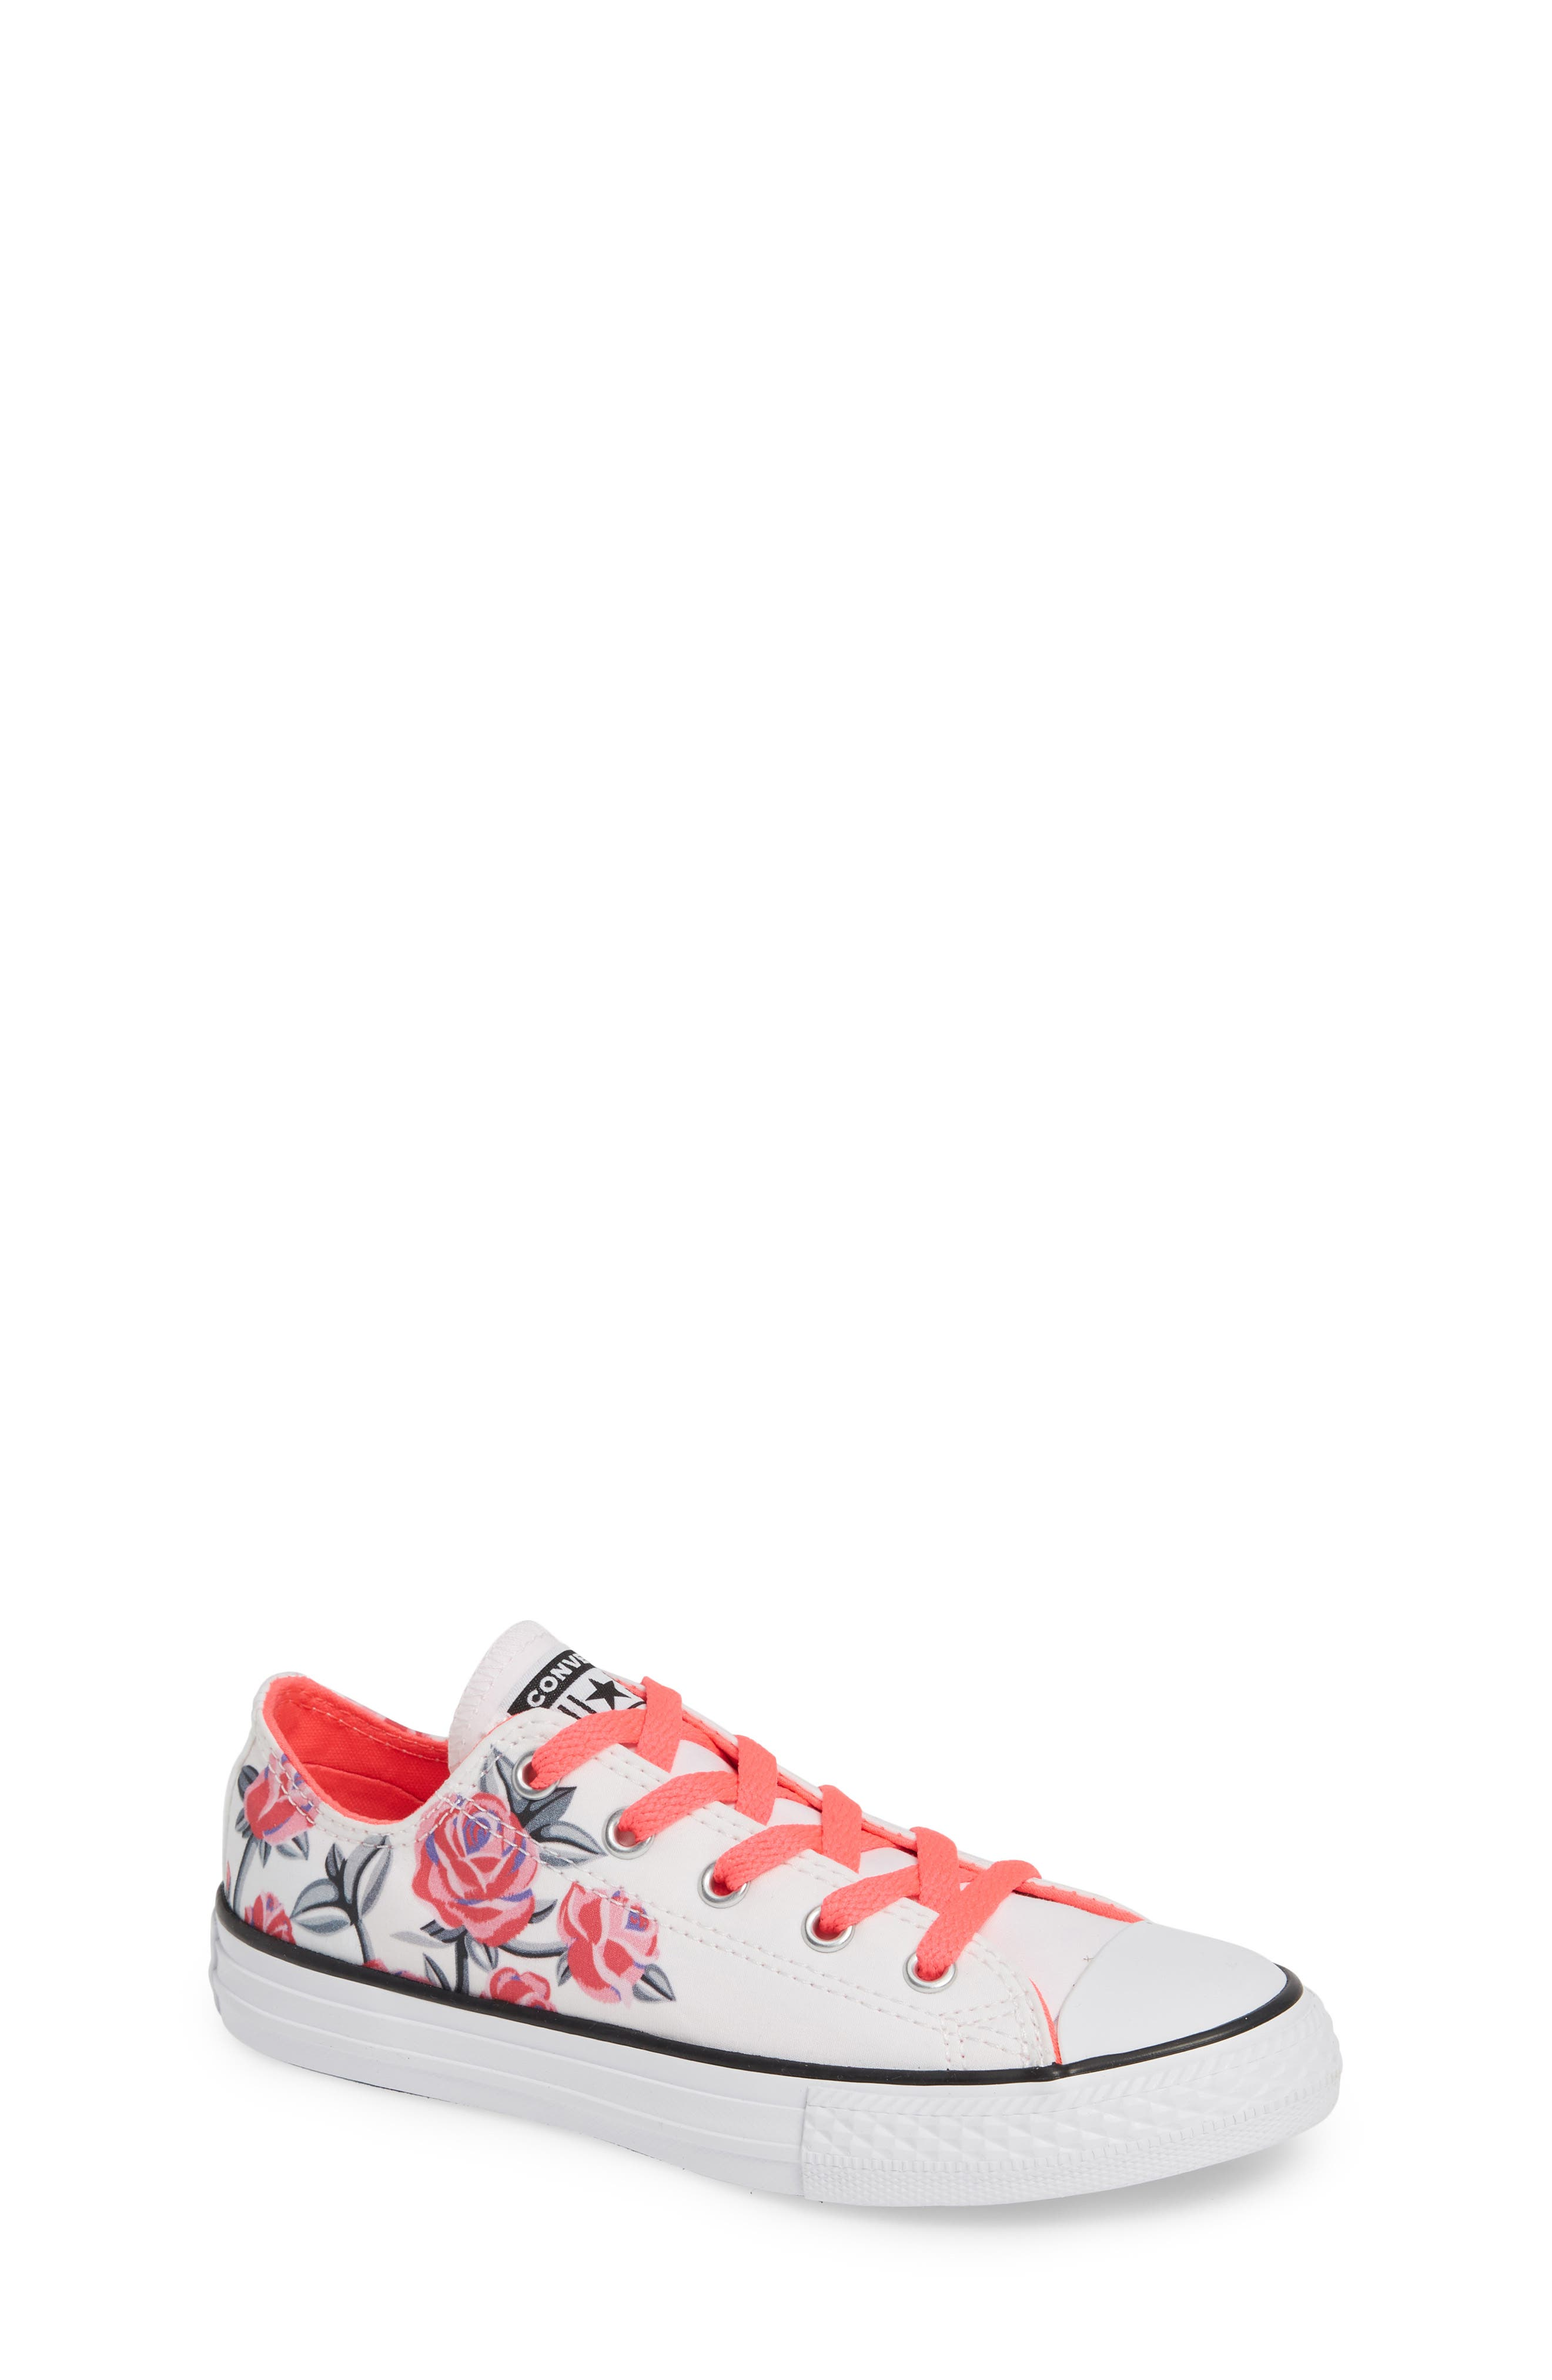 Chuck Taylor<sup>®</sup> All Star<sup>®</sup> Low Top Sneaker, Main, color, WHITE/ RACER PINK/ BLACK